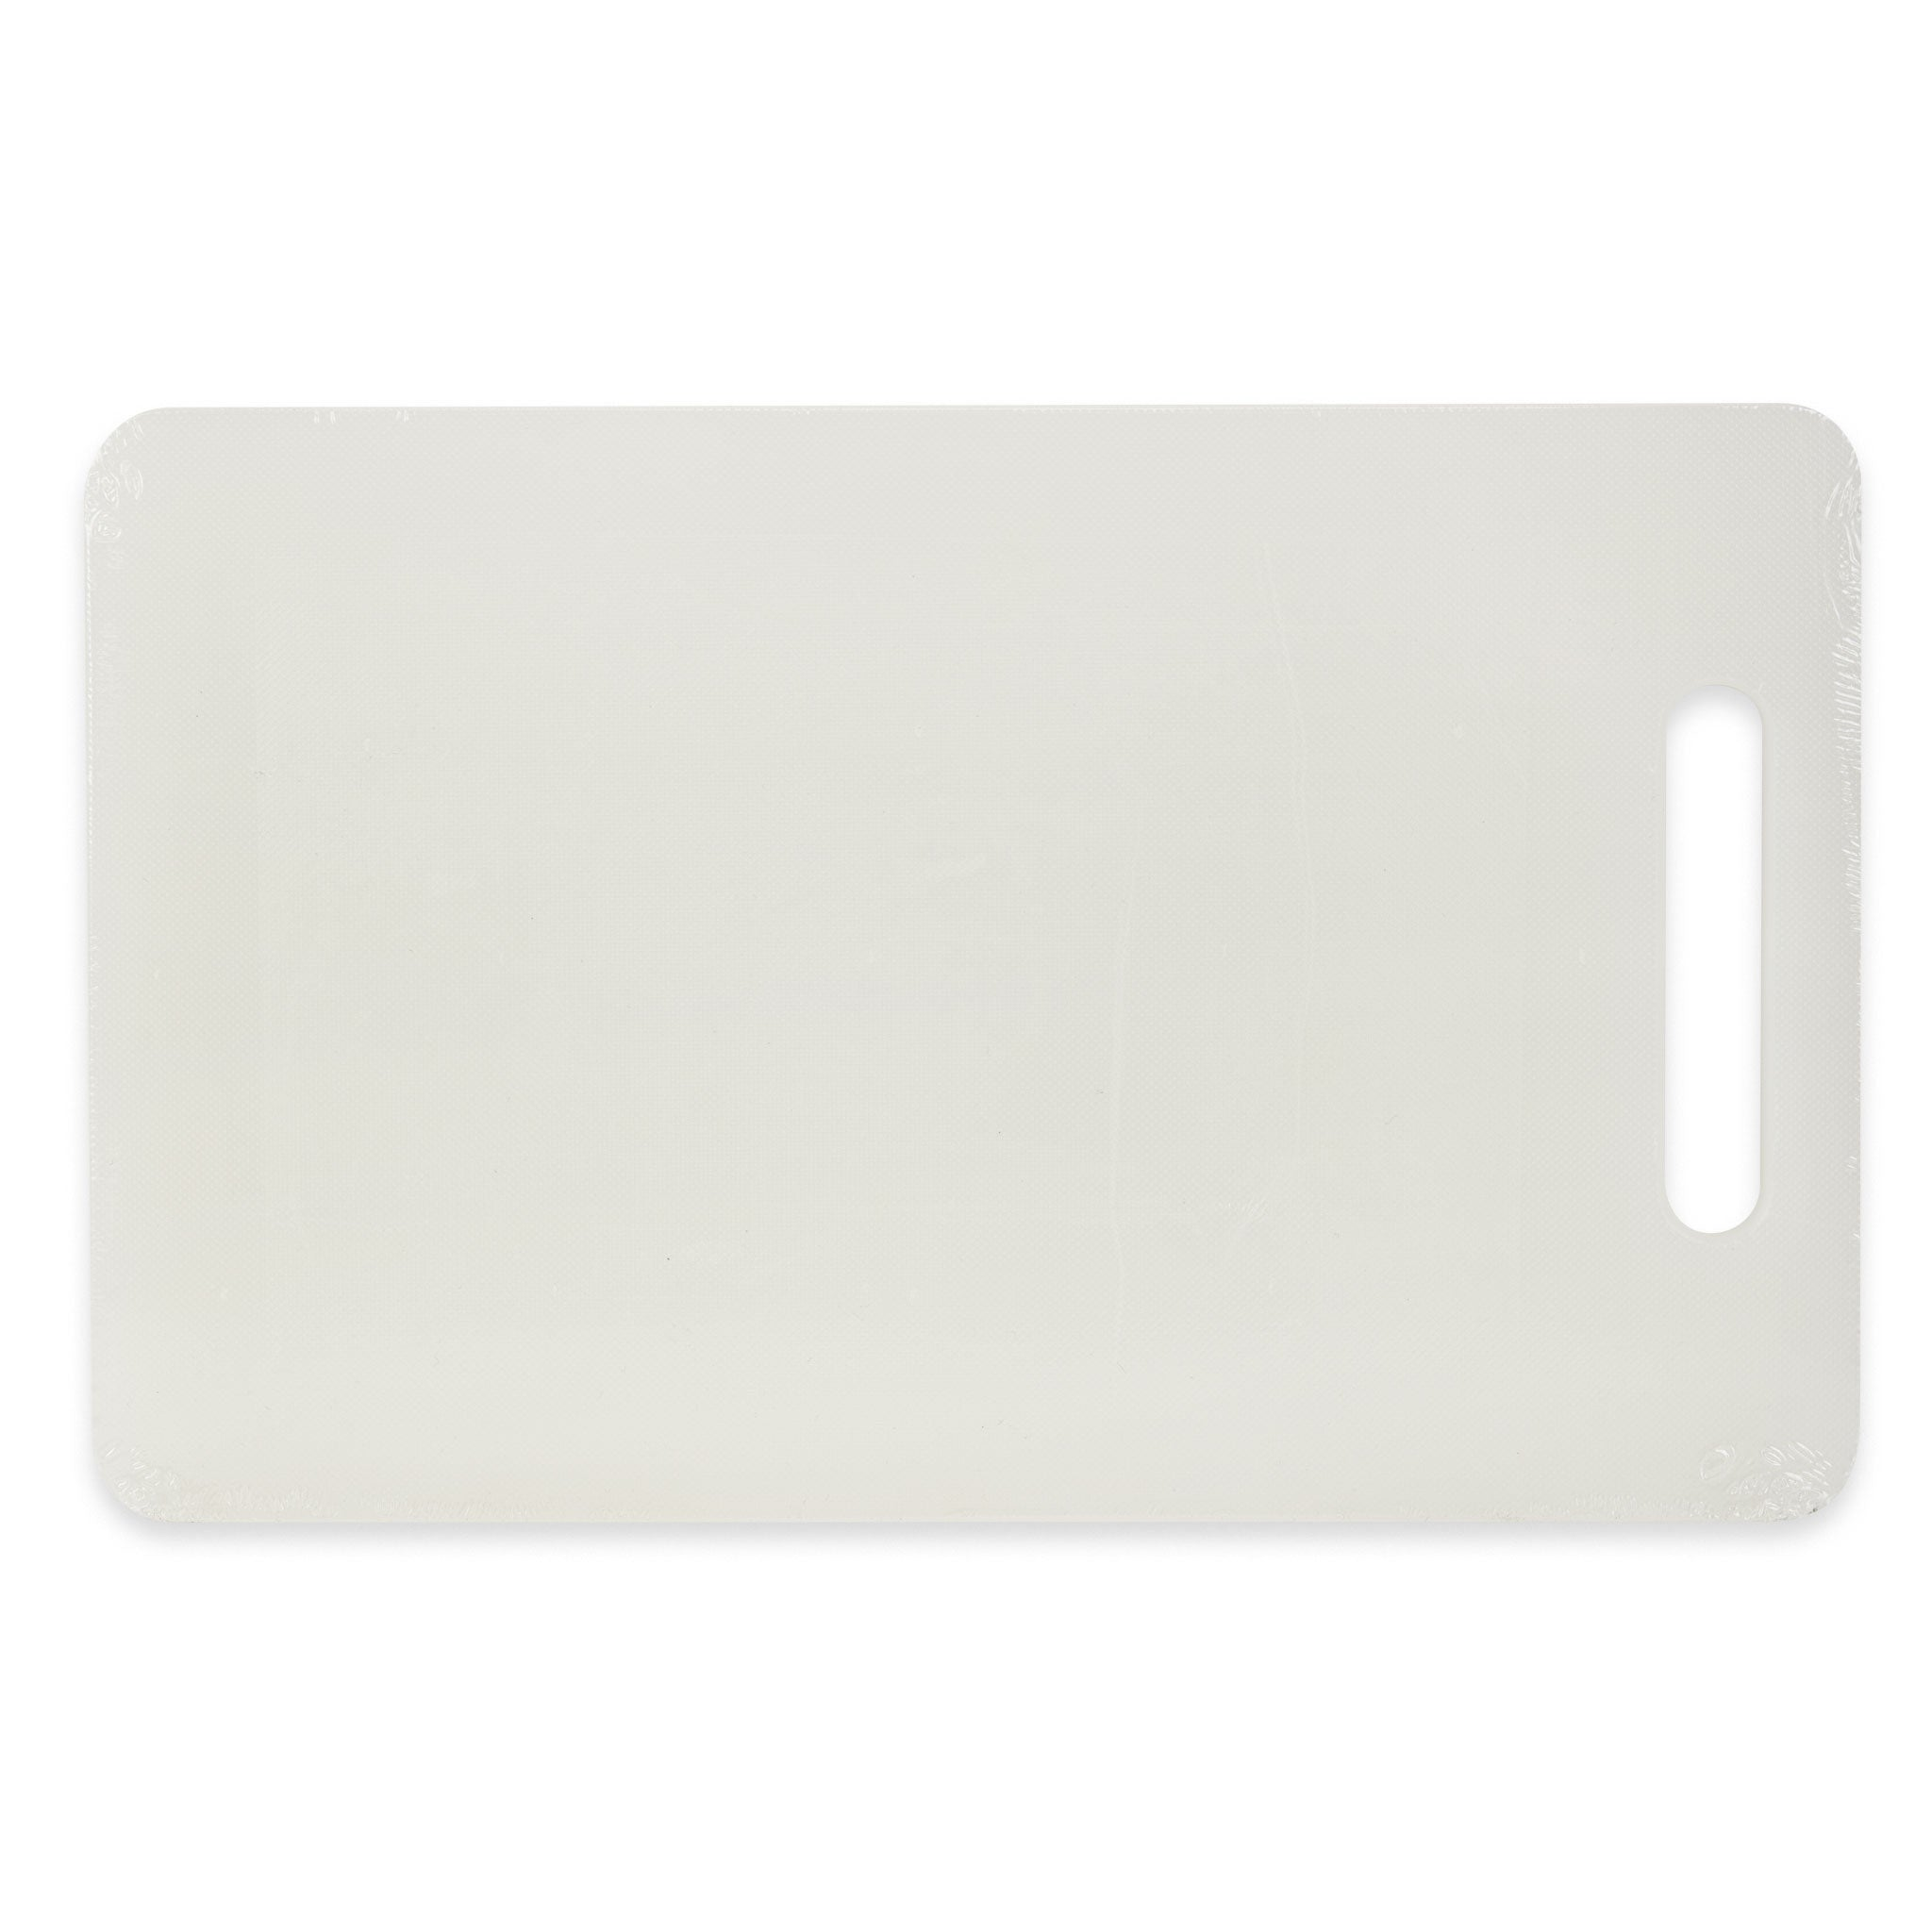 "10.5"" x 6.5"" Chopping Board PB06 - Tribest"